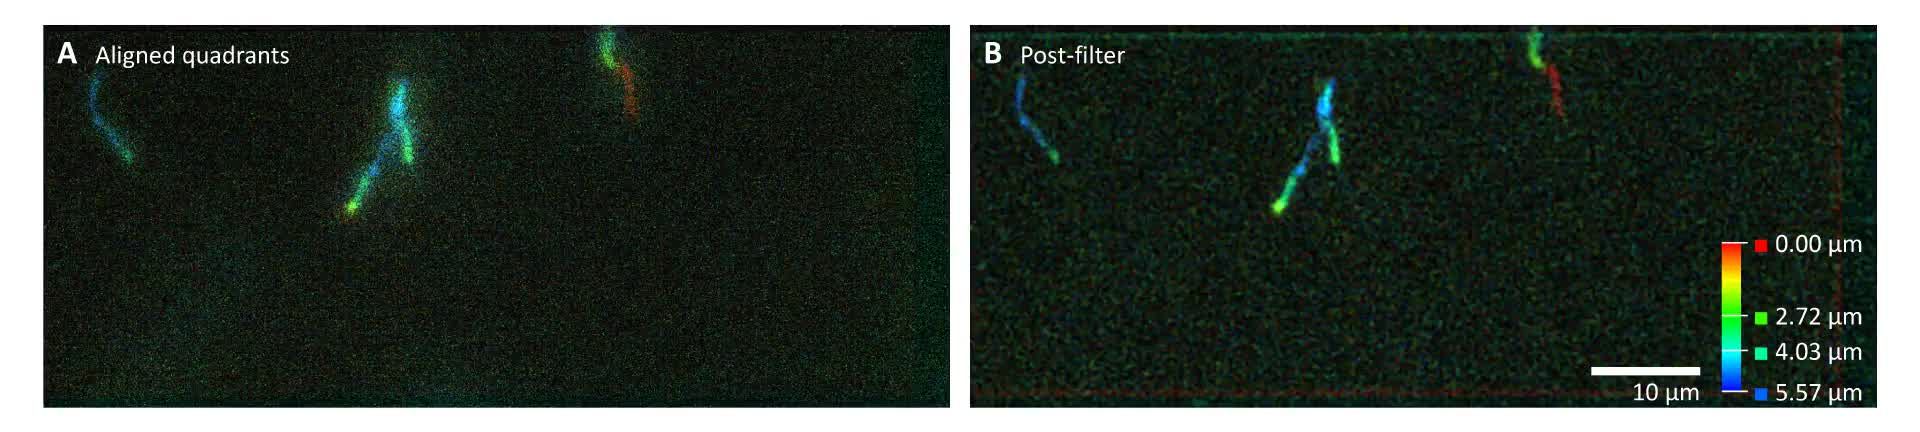 High-speed multifocal plane fluorescence microscopy for